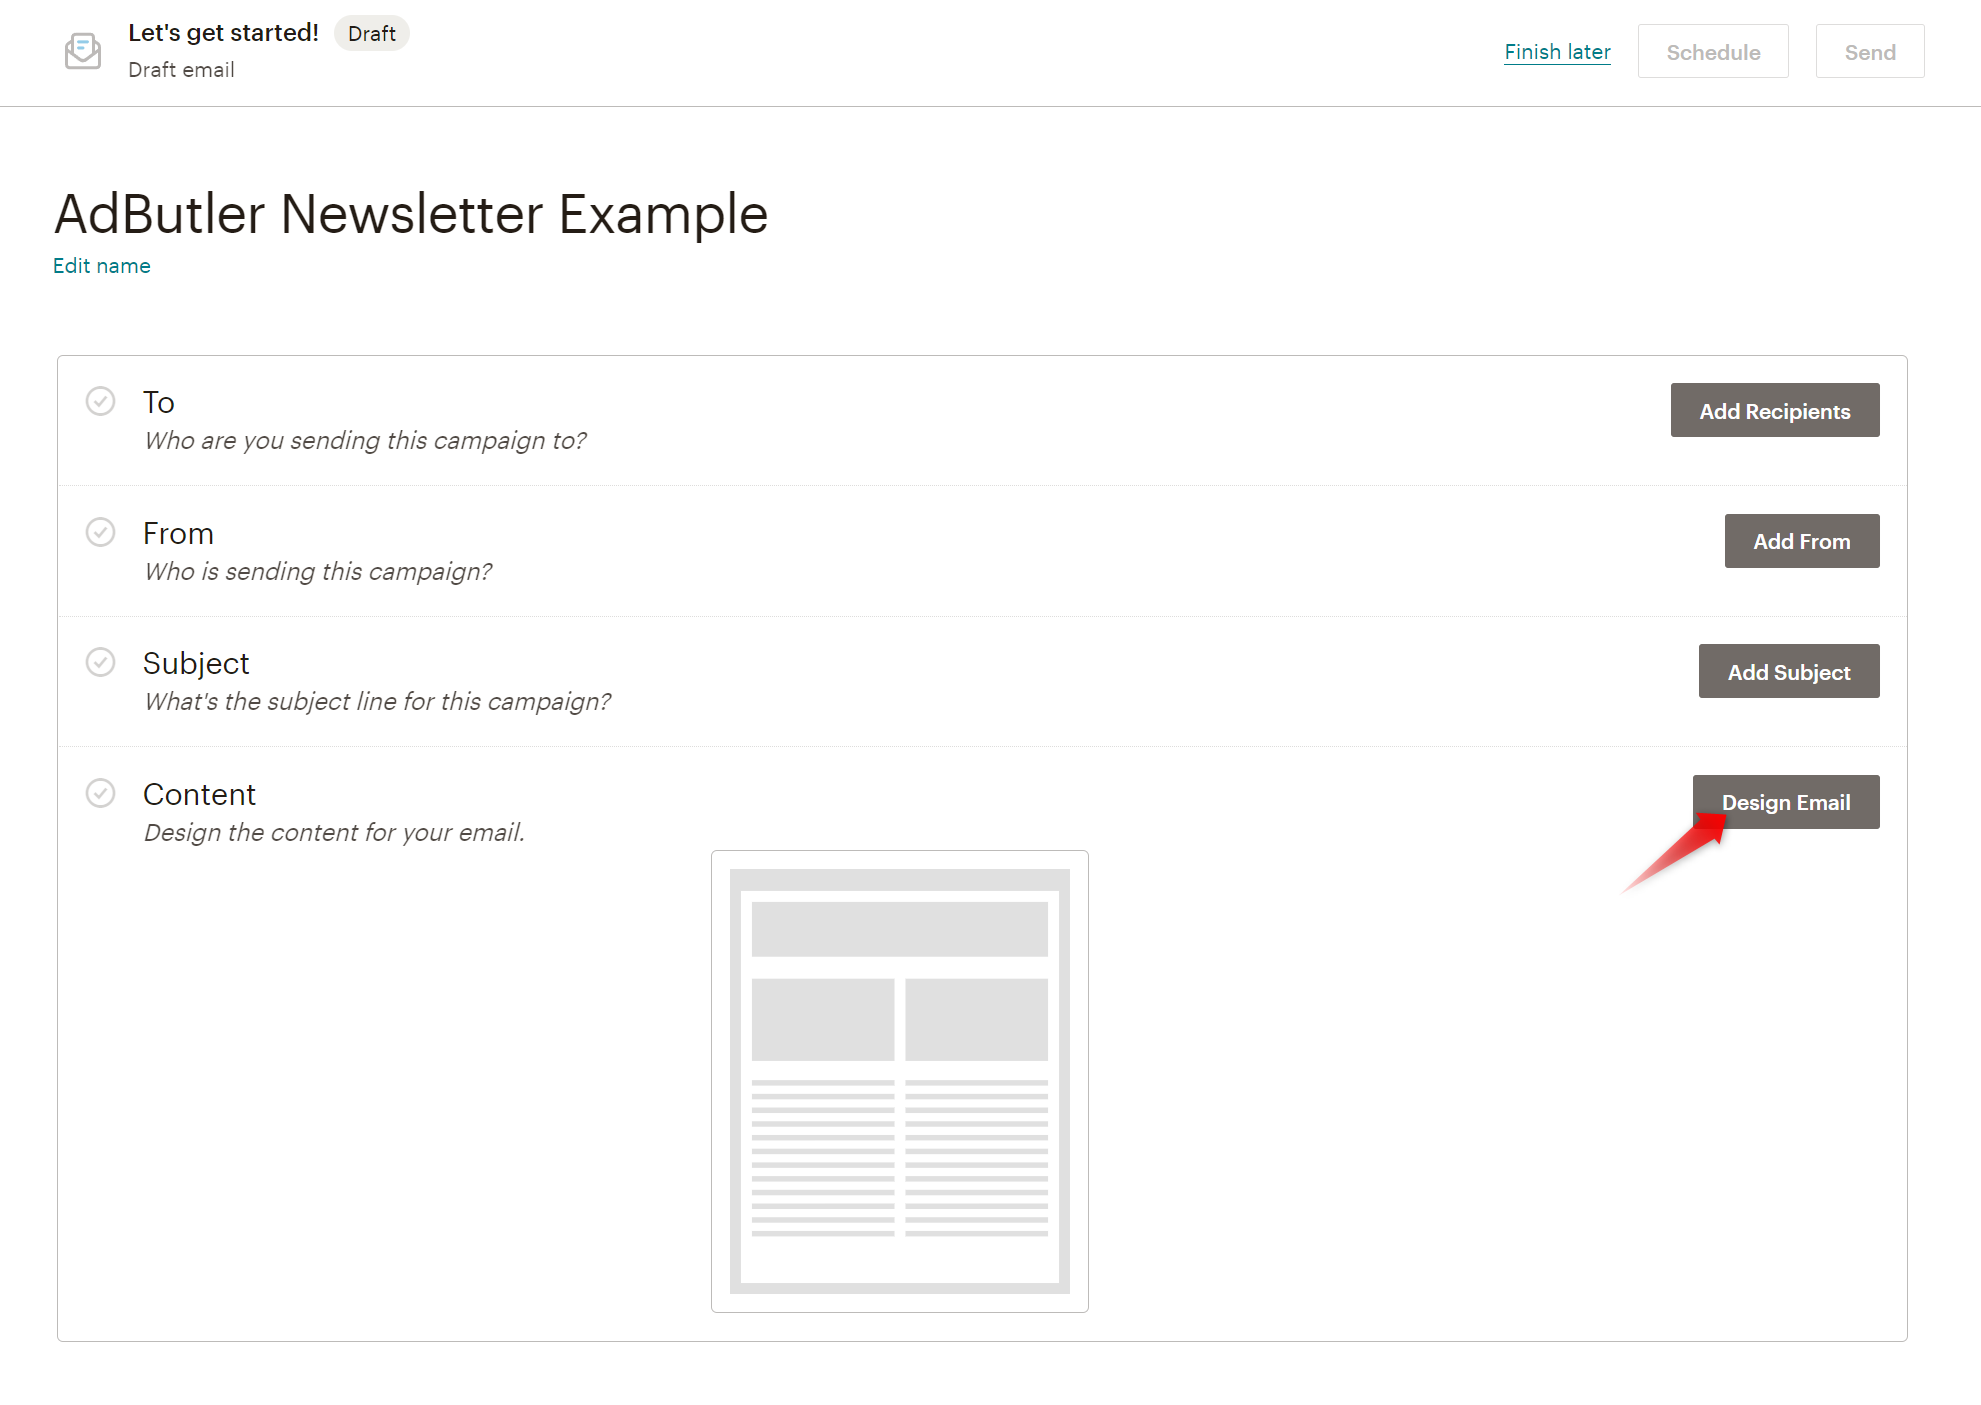 Creating an email template in Mailchimp